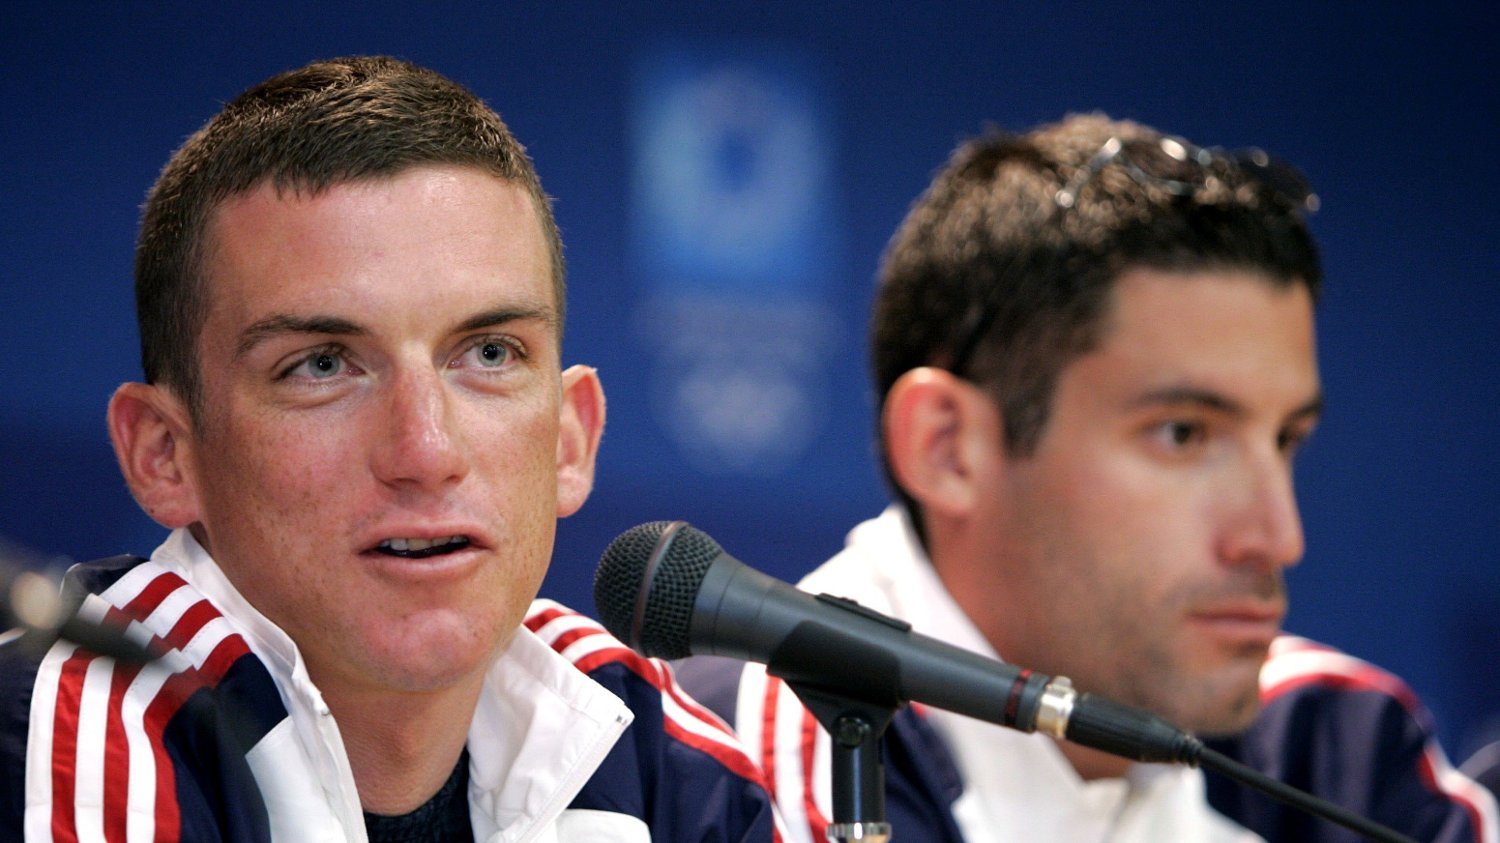 Members of the U.S. men's Olympic Road Cycling Tyler Hamilton, left, and George Hincapie appear before the media at news conference in Athens, Greece Thursday Aug. 12, 2004.